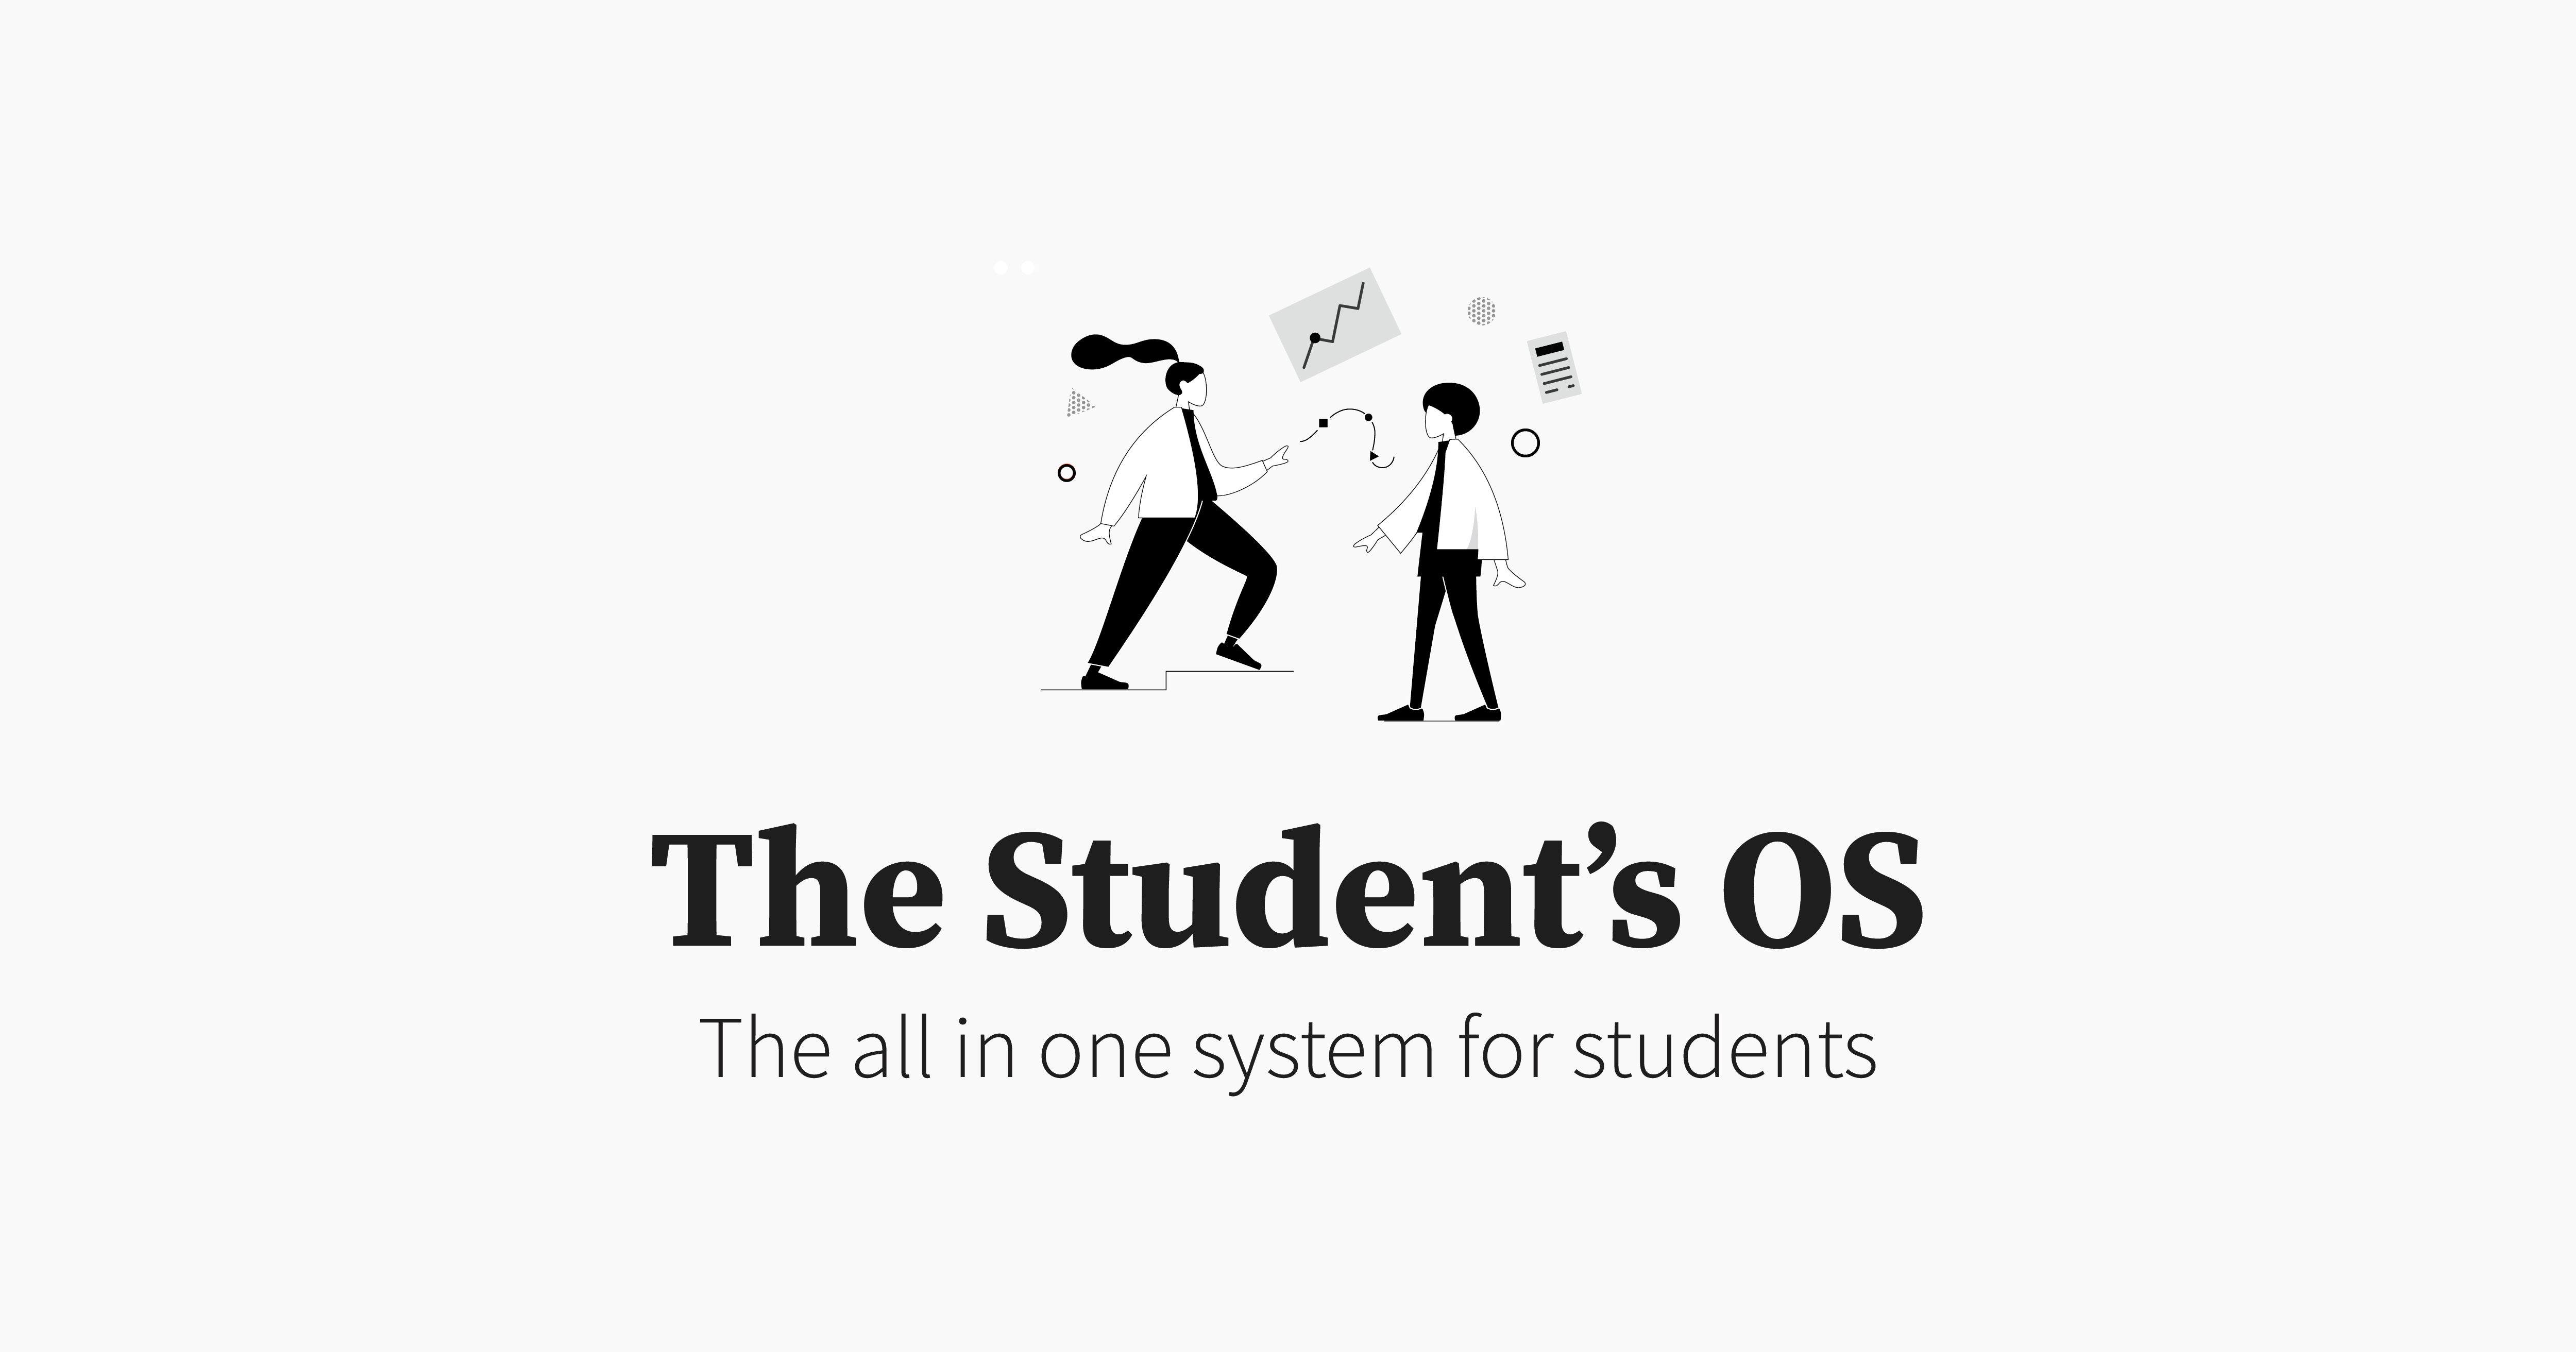 The student's OS